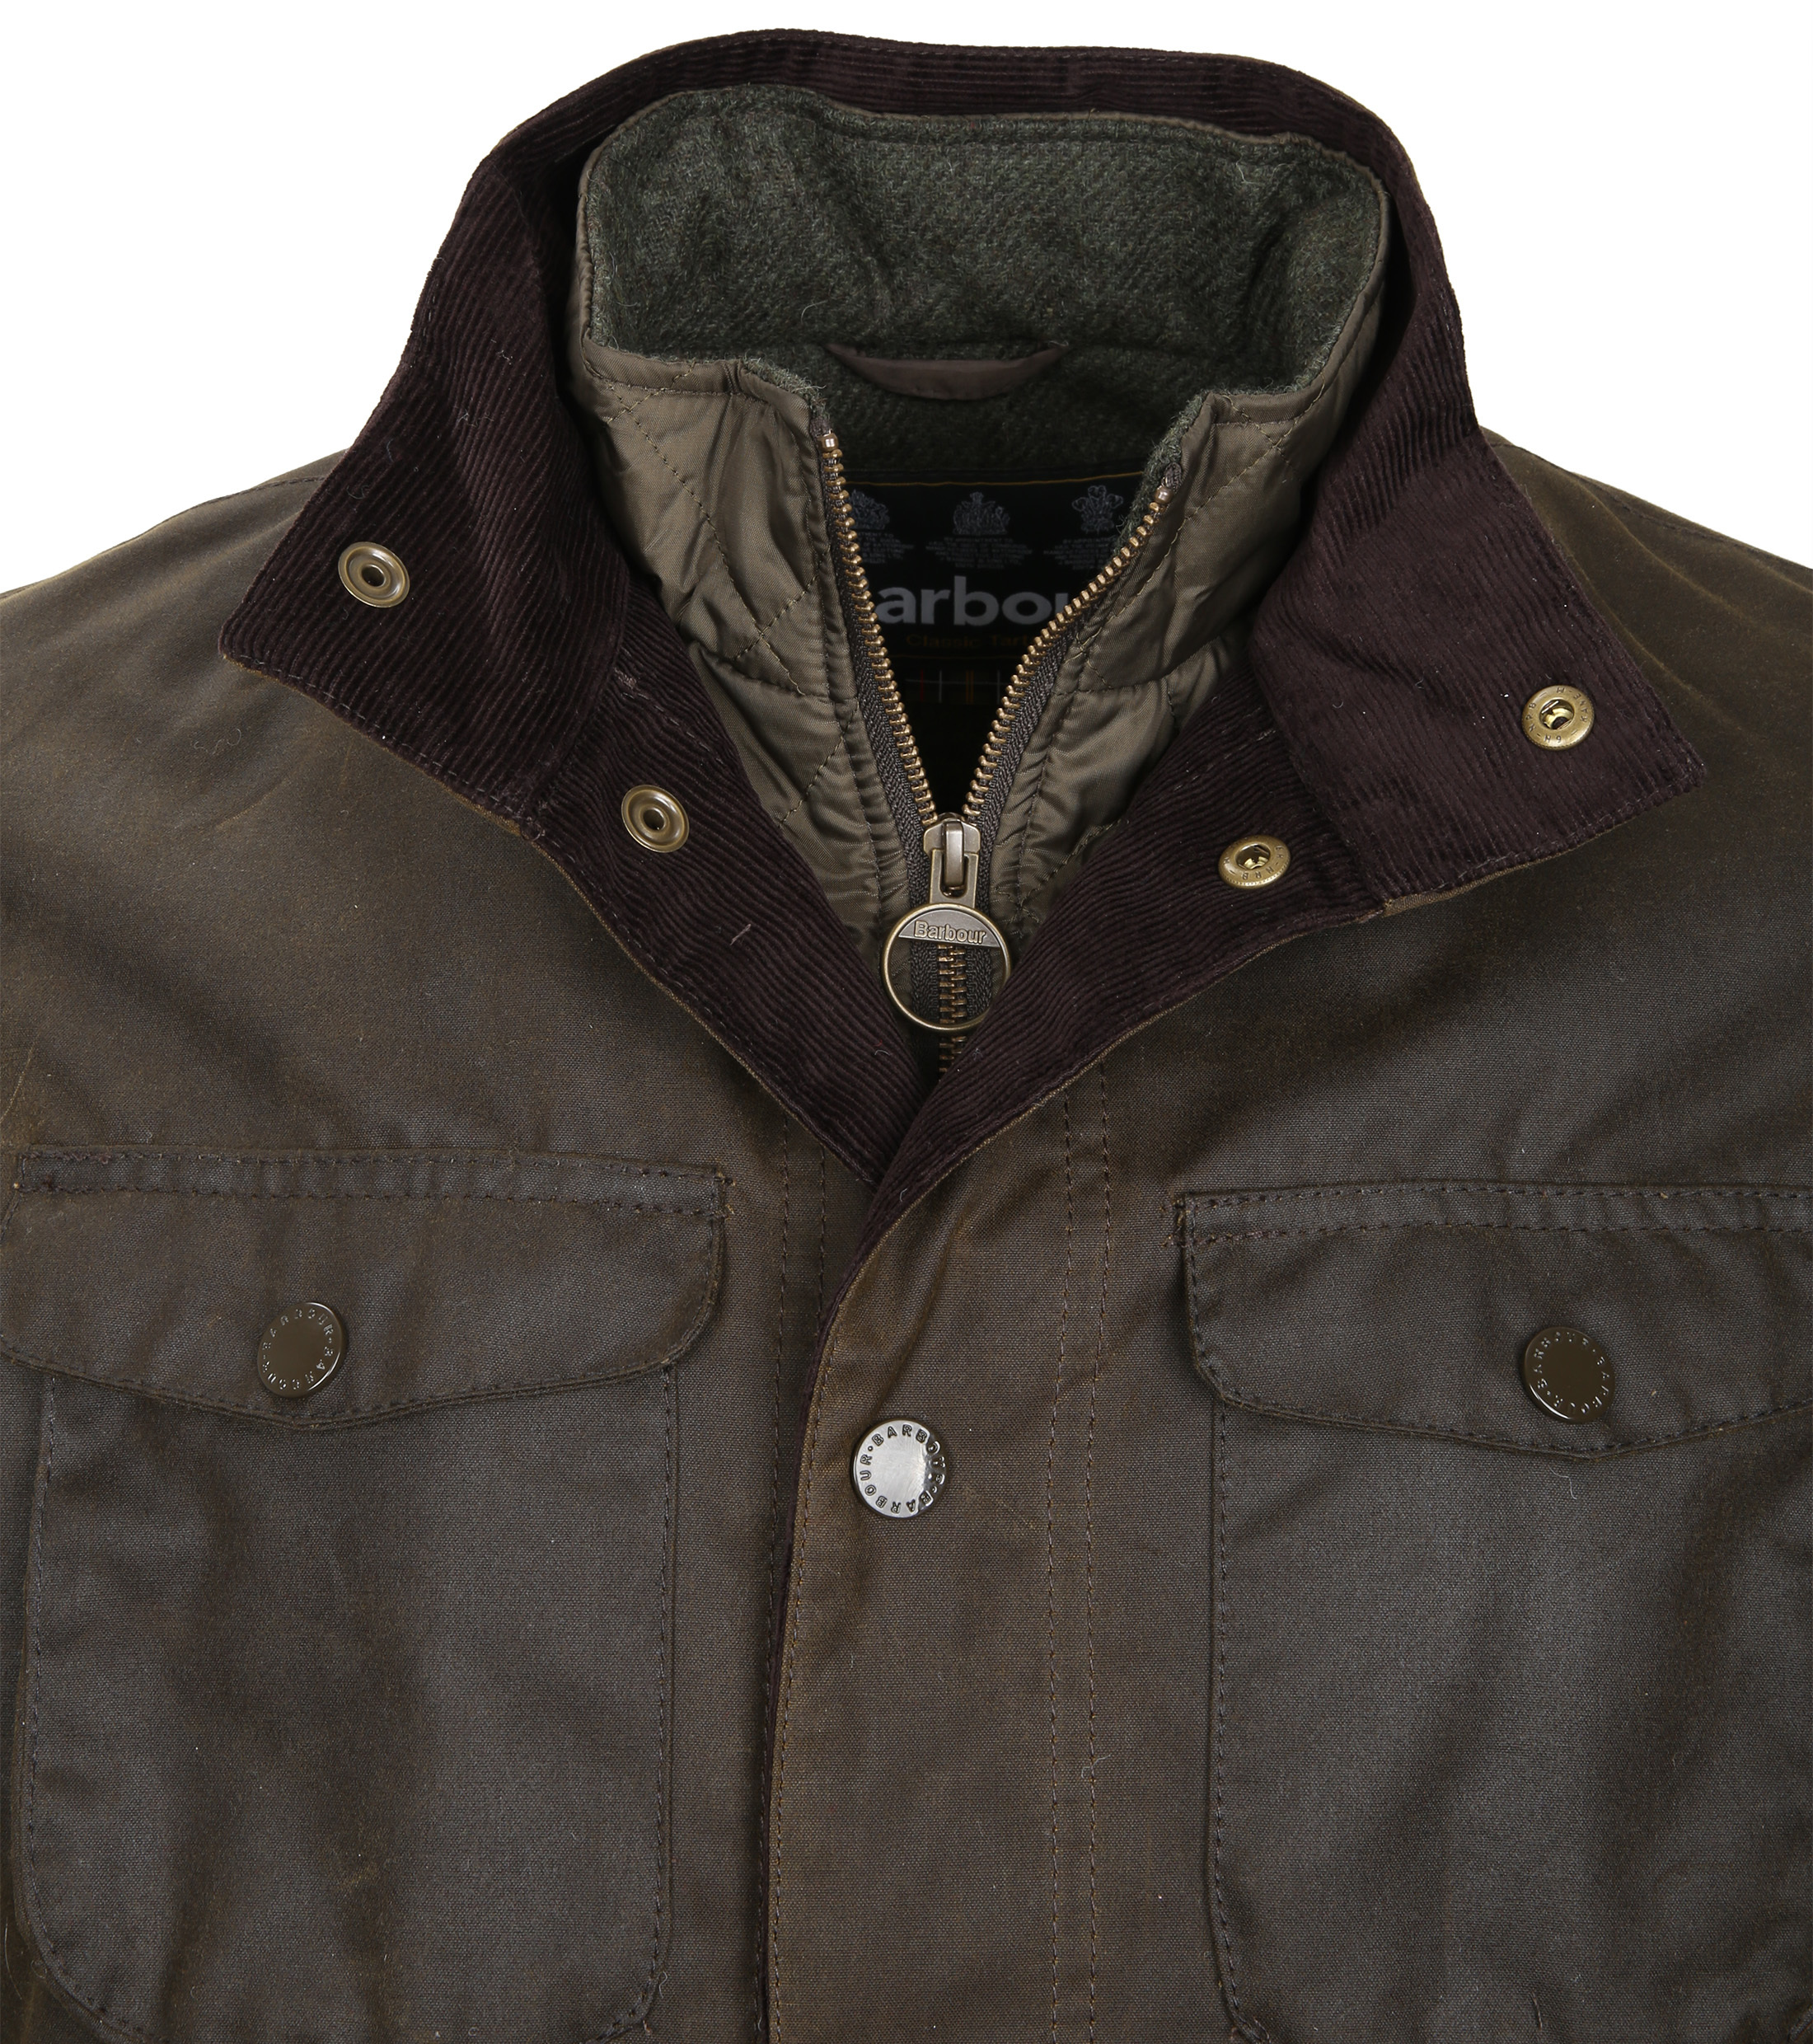 Barbour Waxjas Ogston Olive foto 1